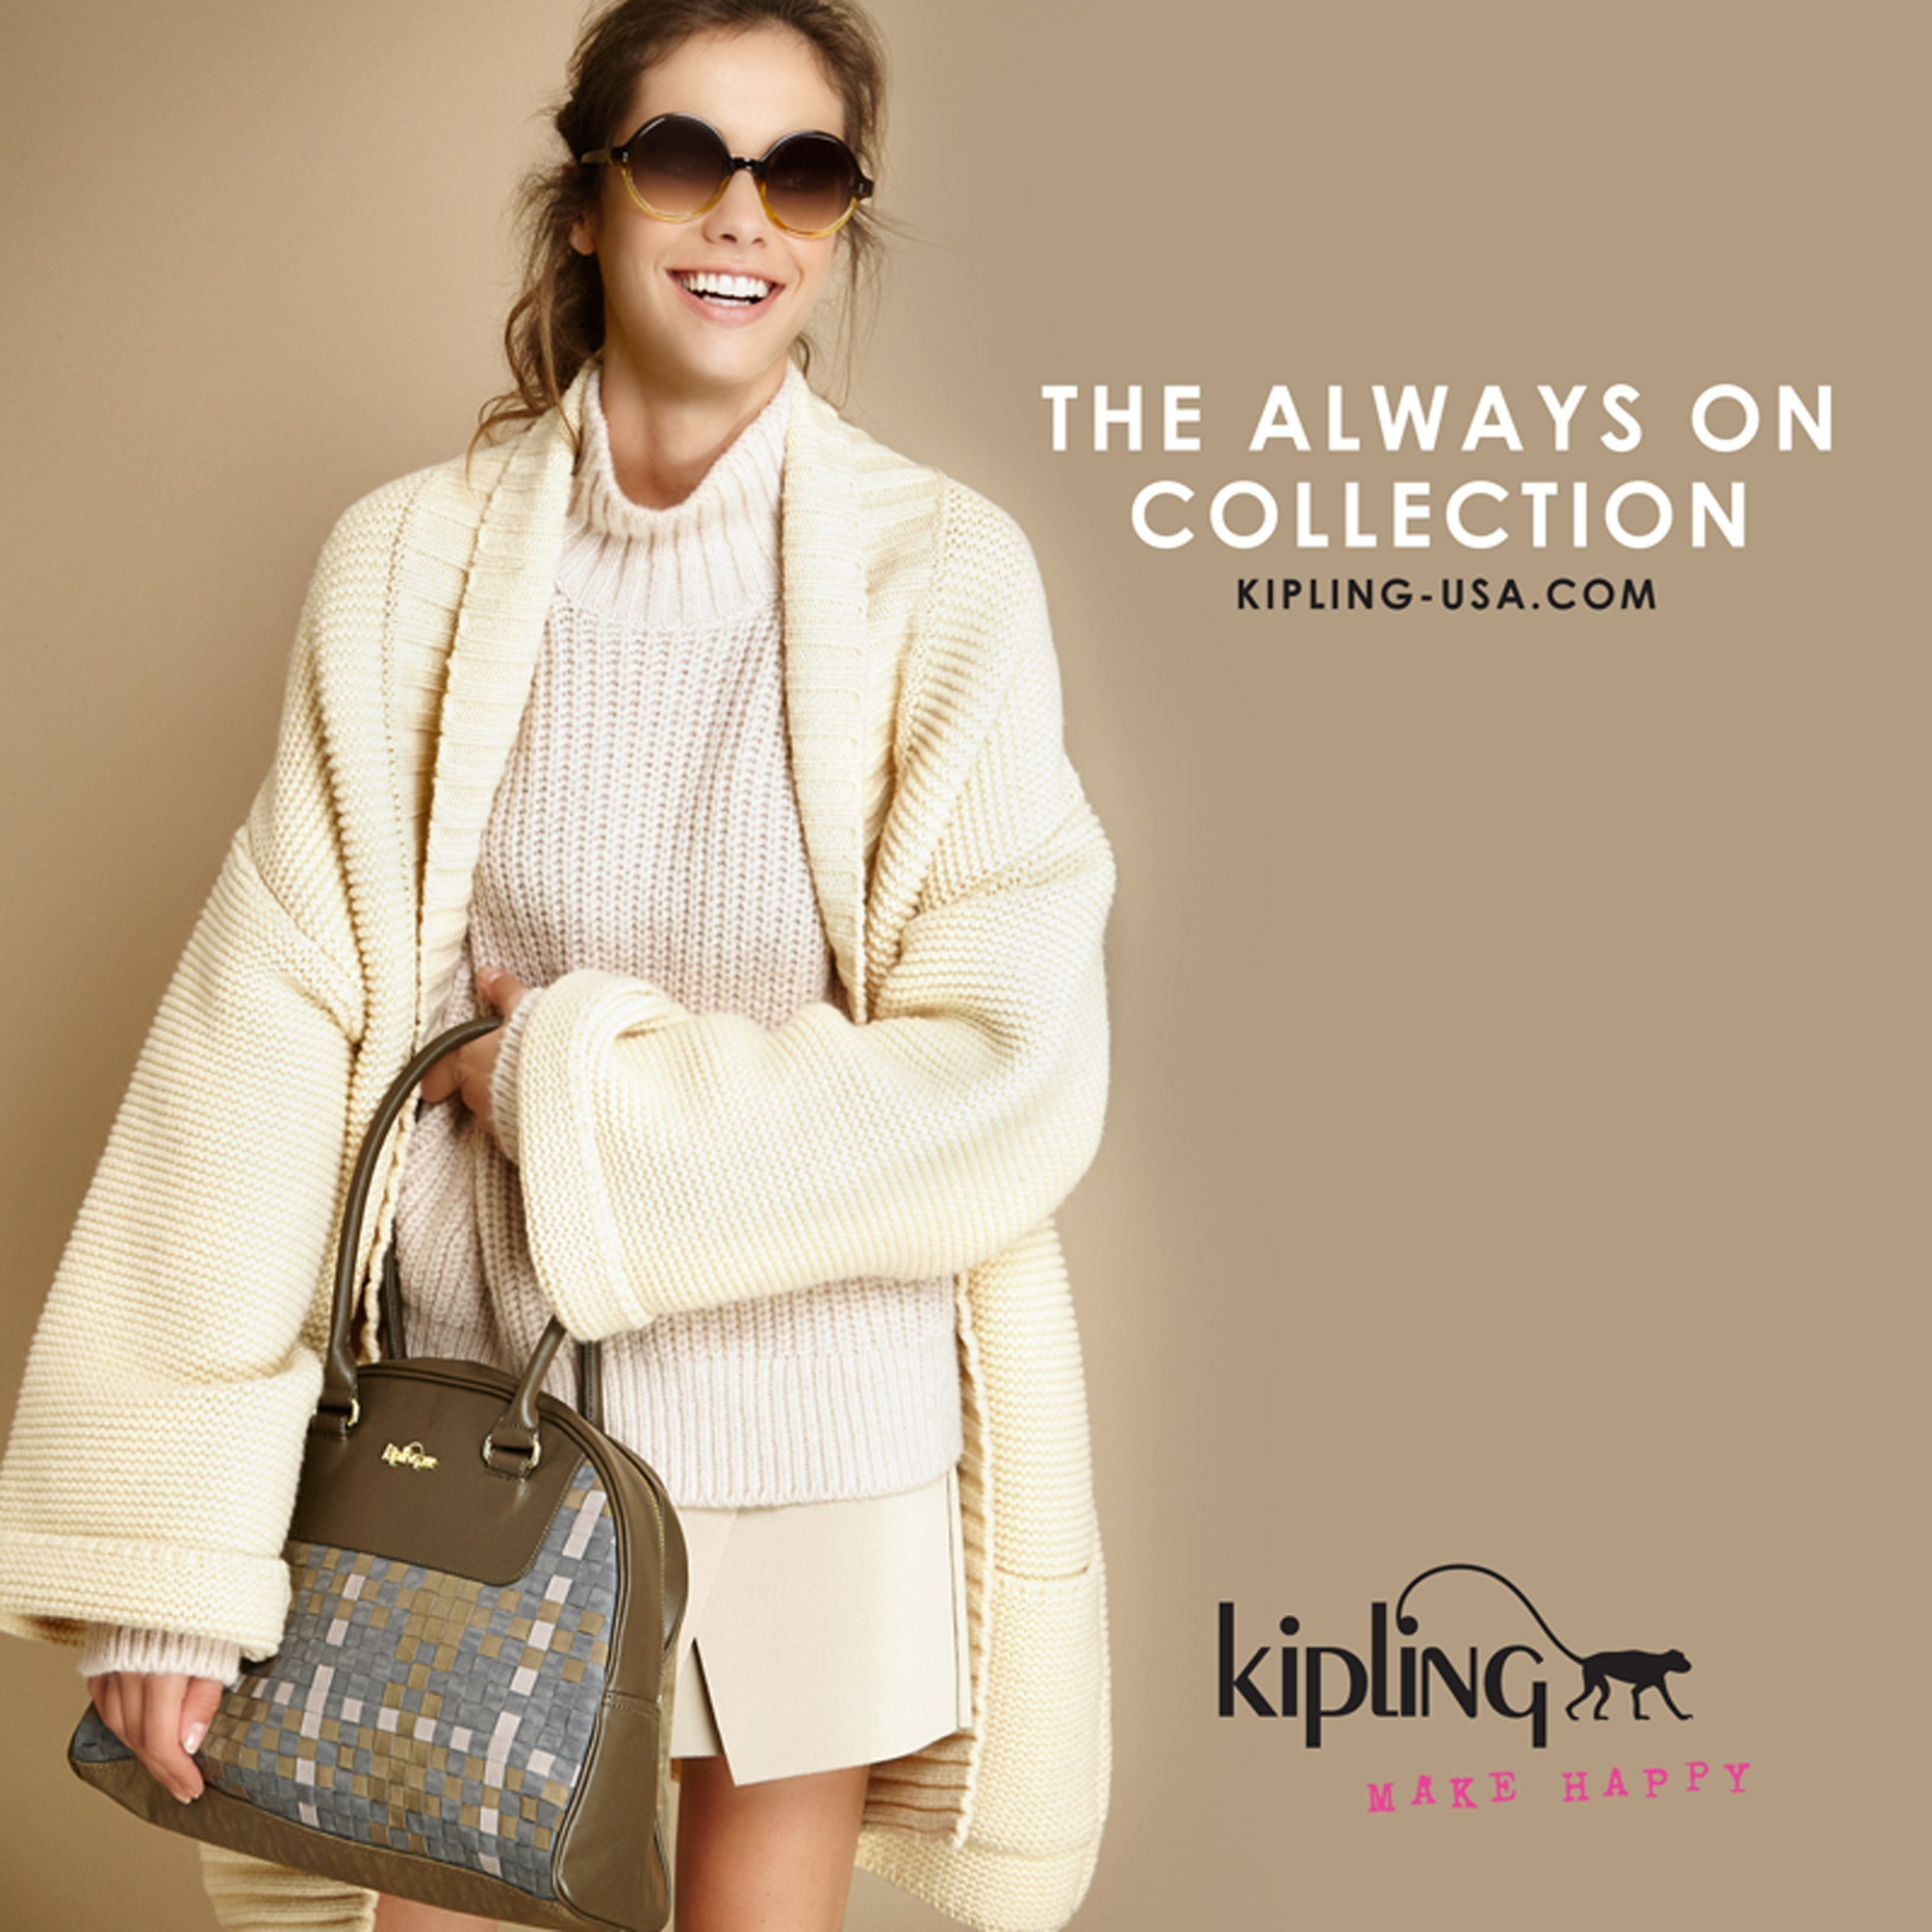 Kipling Launches New Handbag Collection